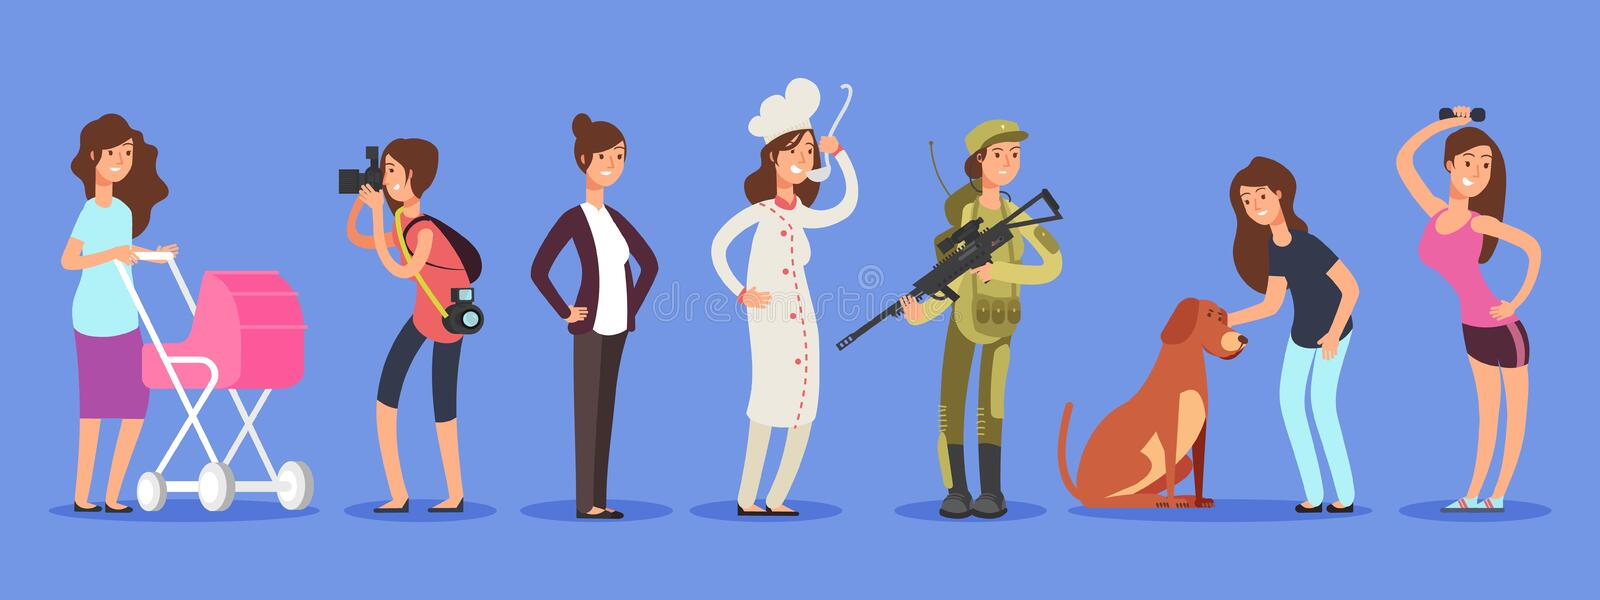 Female free choice vector concept. Woman in different life roles and professions illustration vector illustration